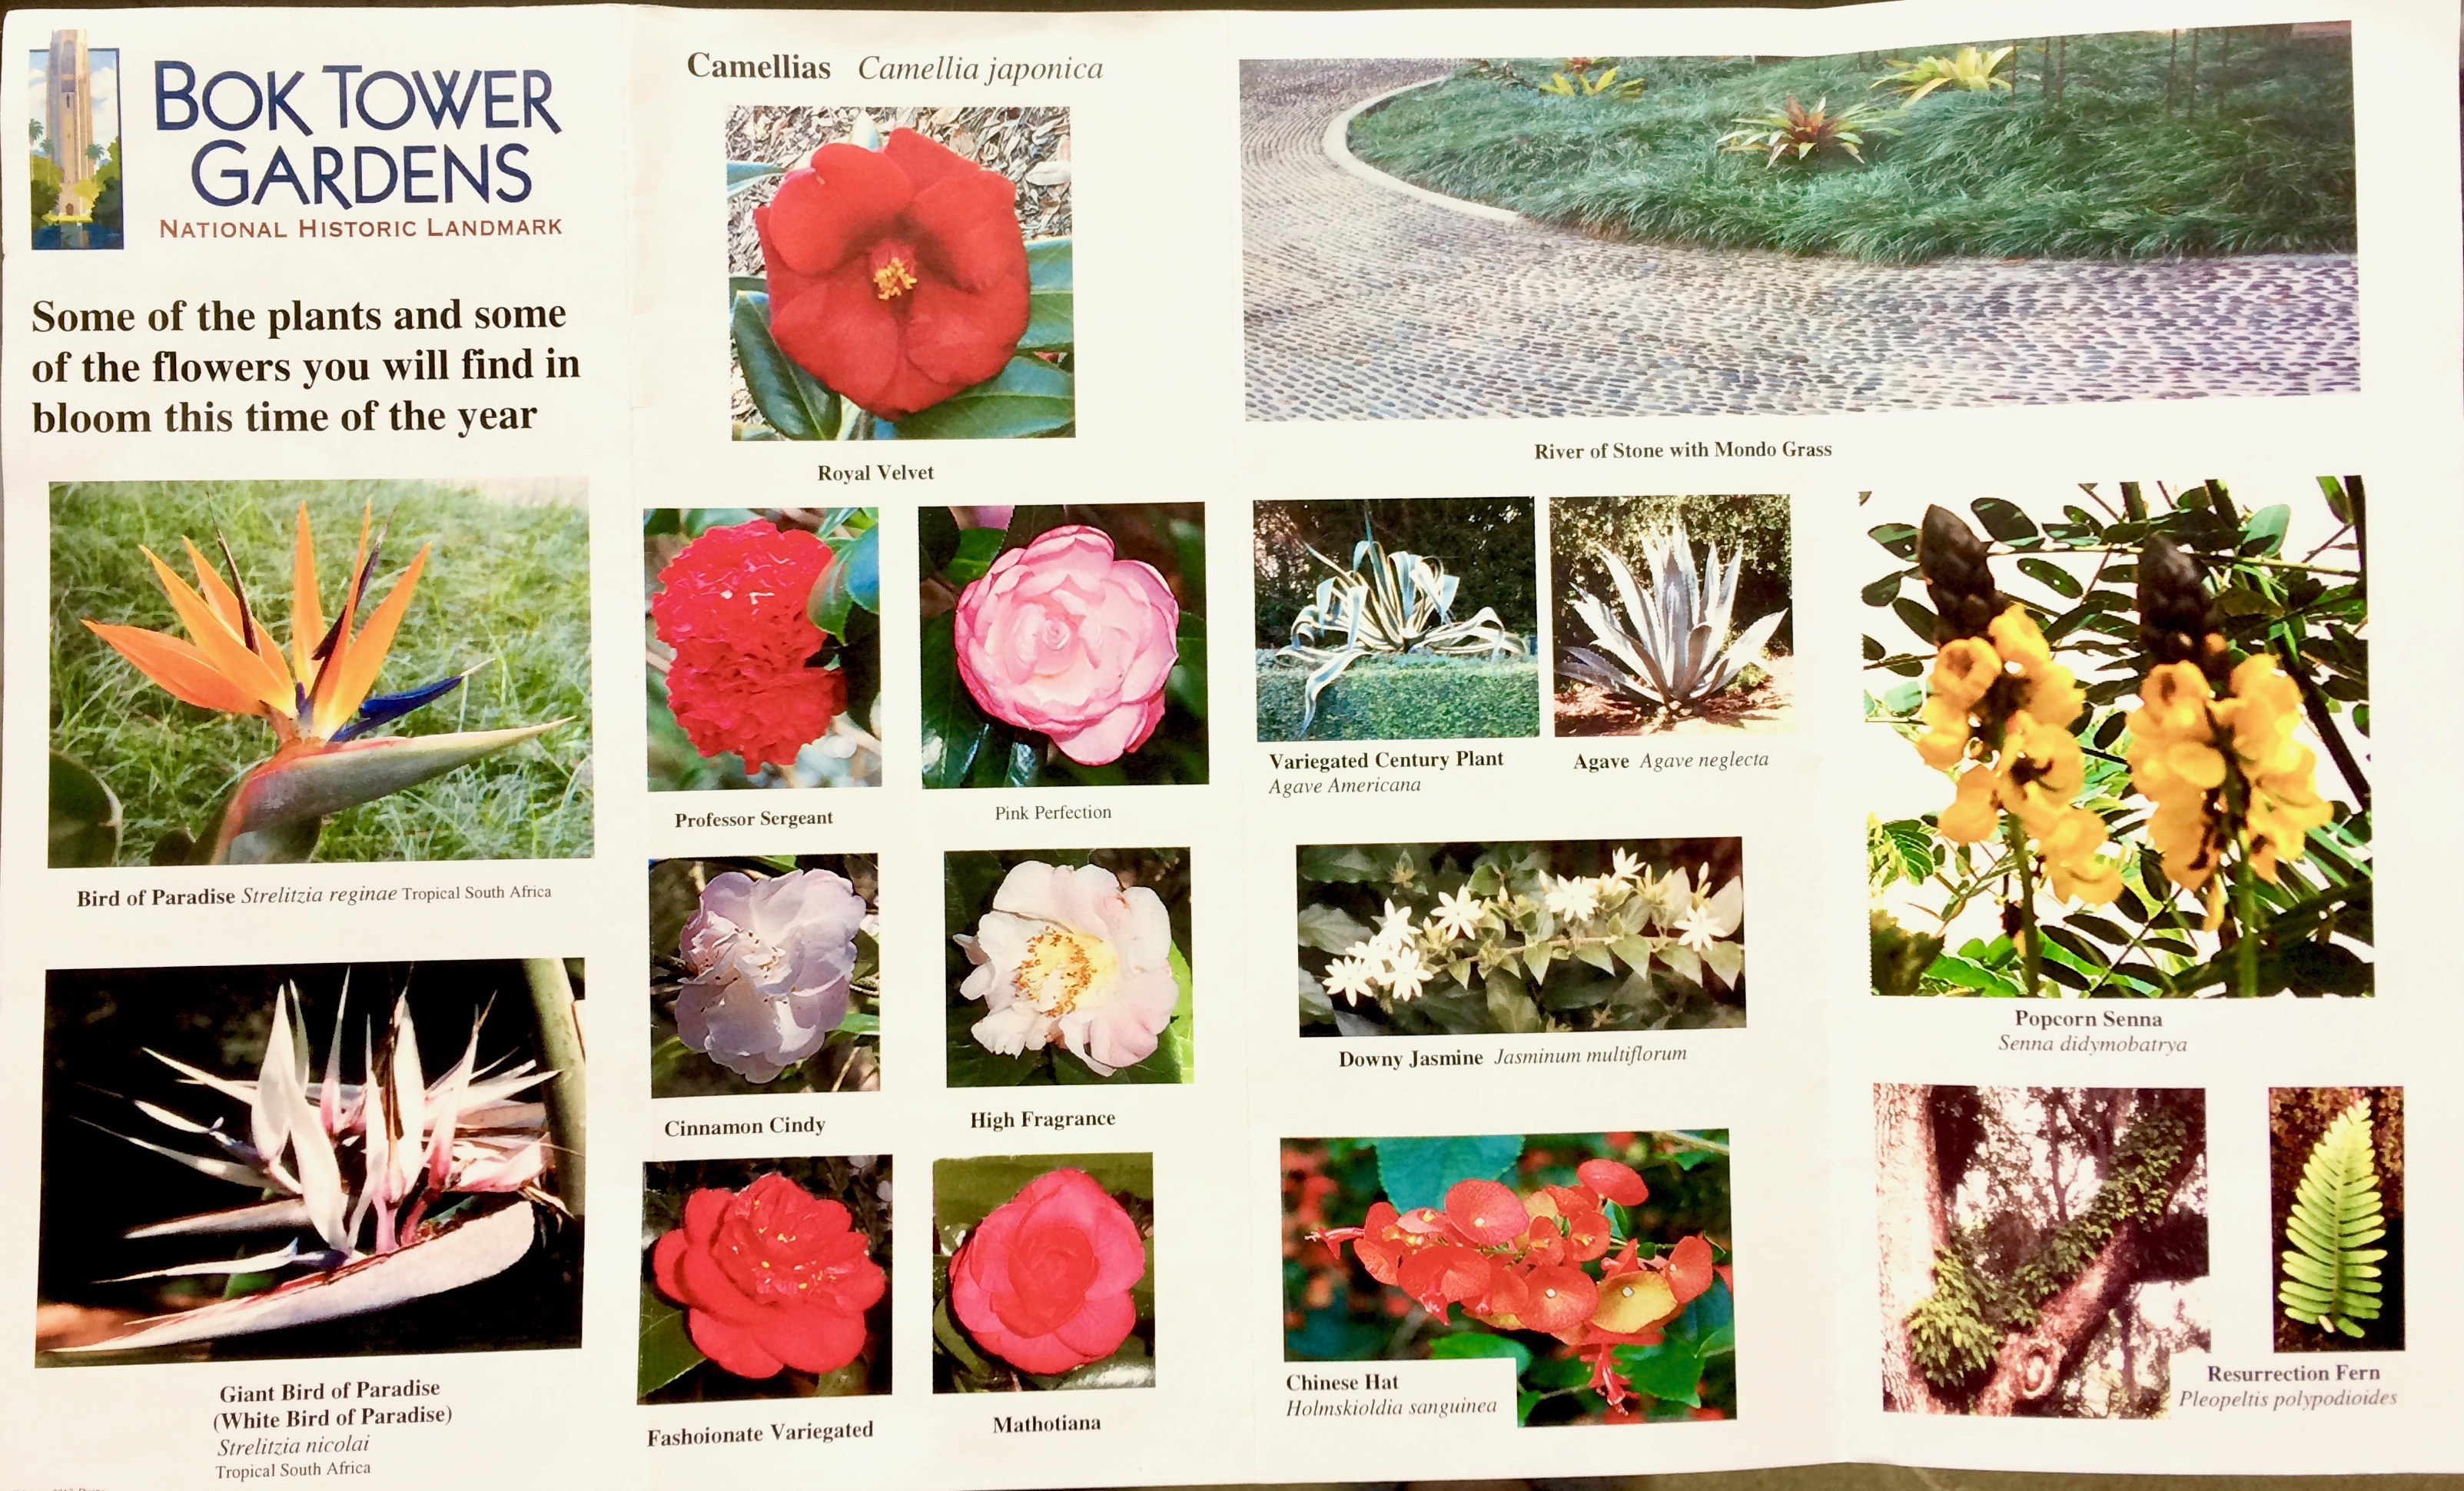 Plants & Flowers this time of year p 1